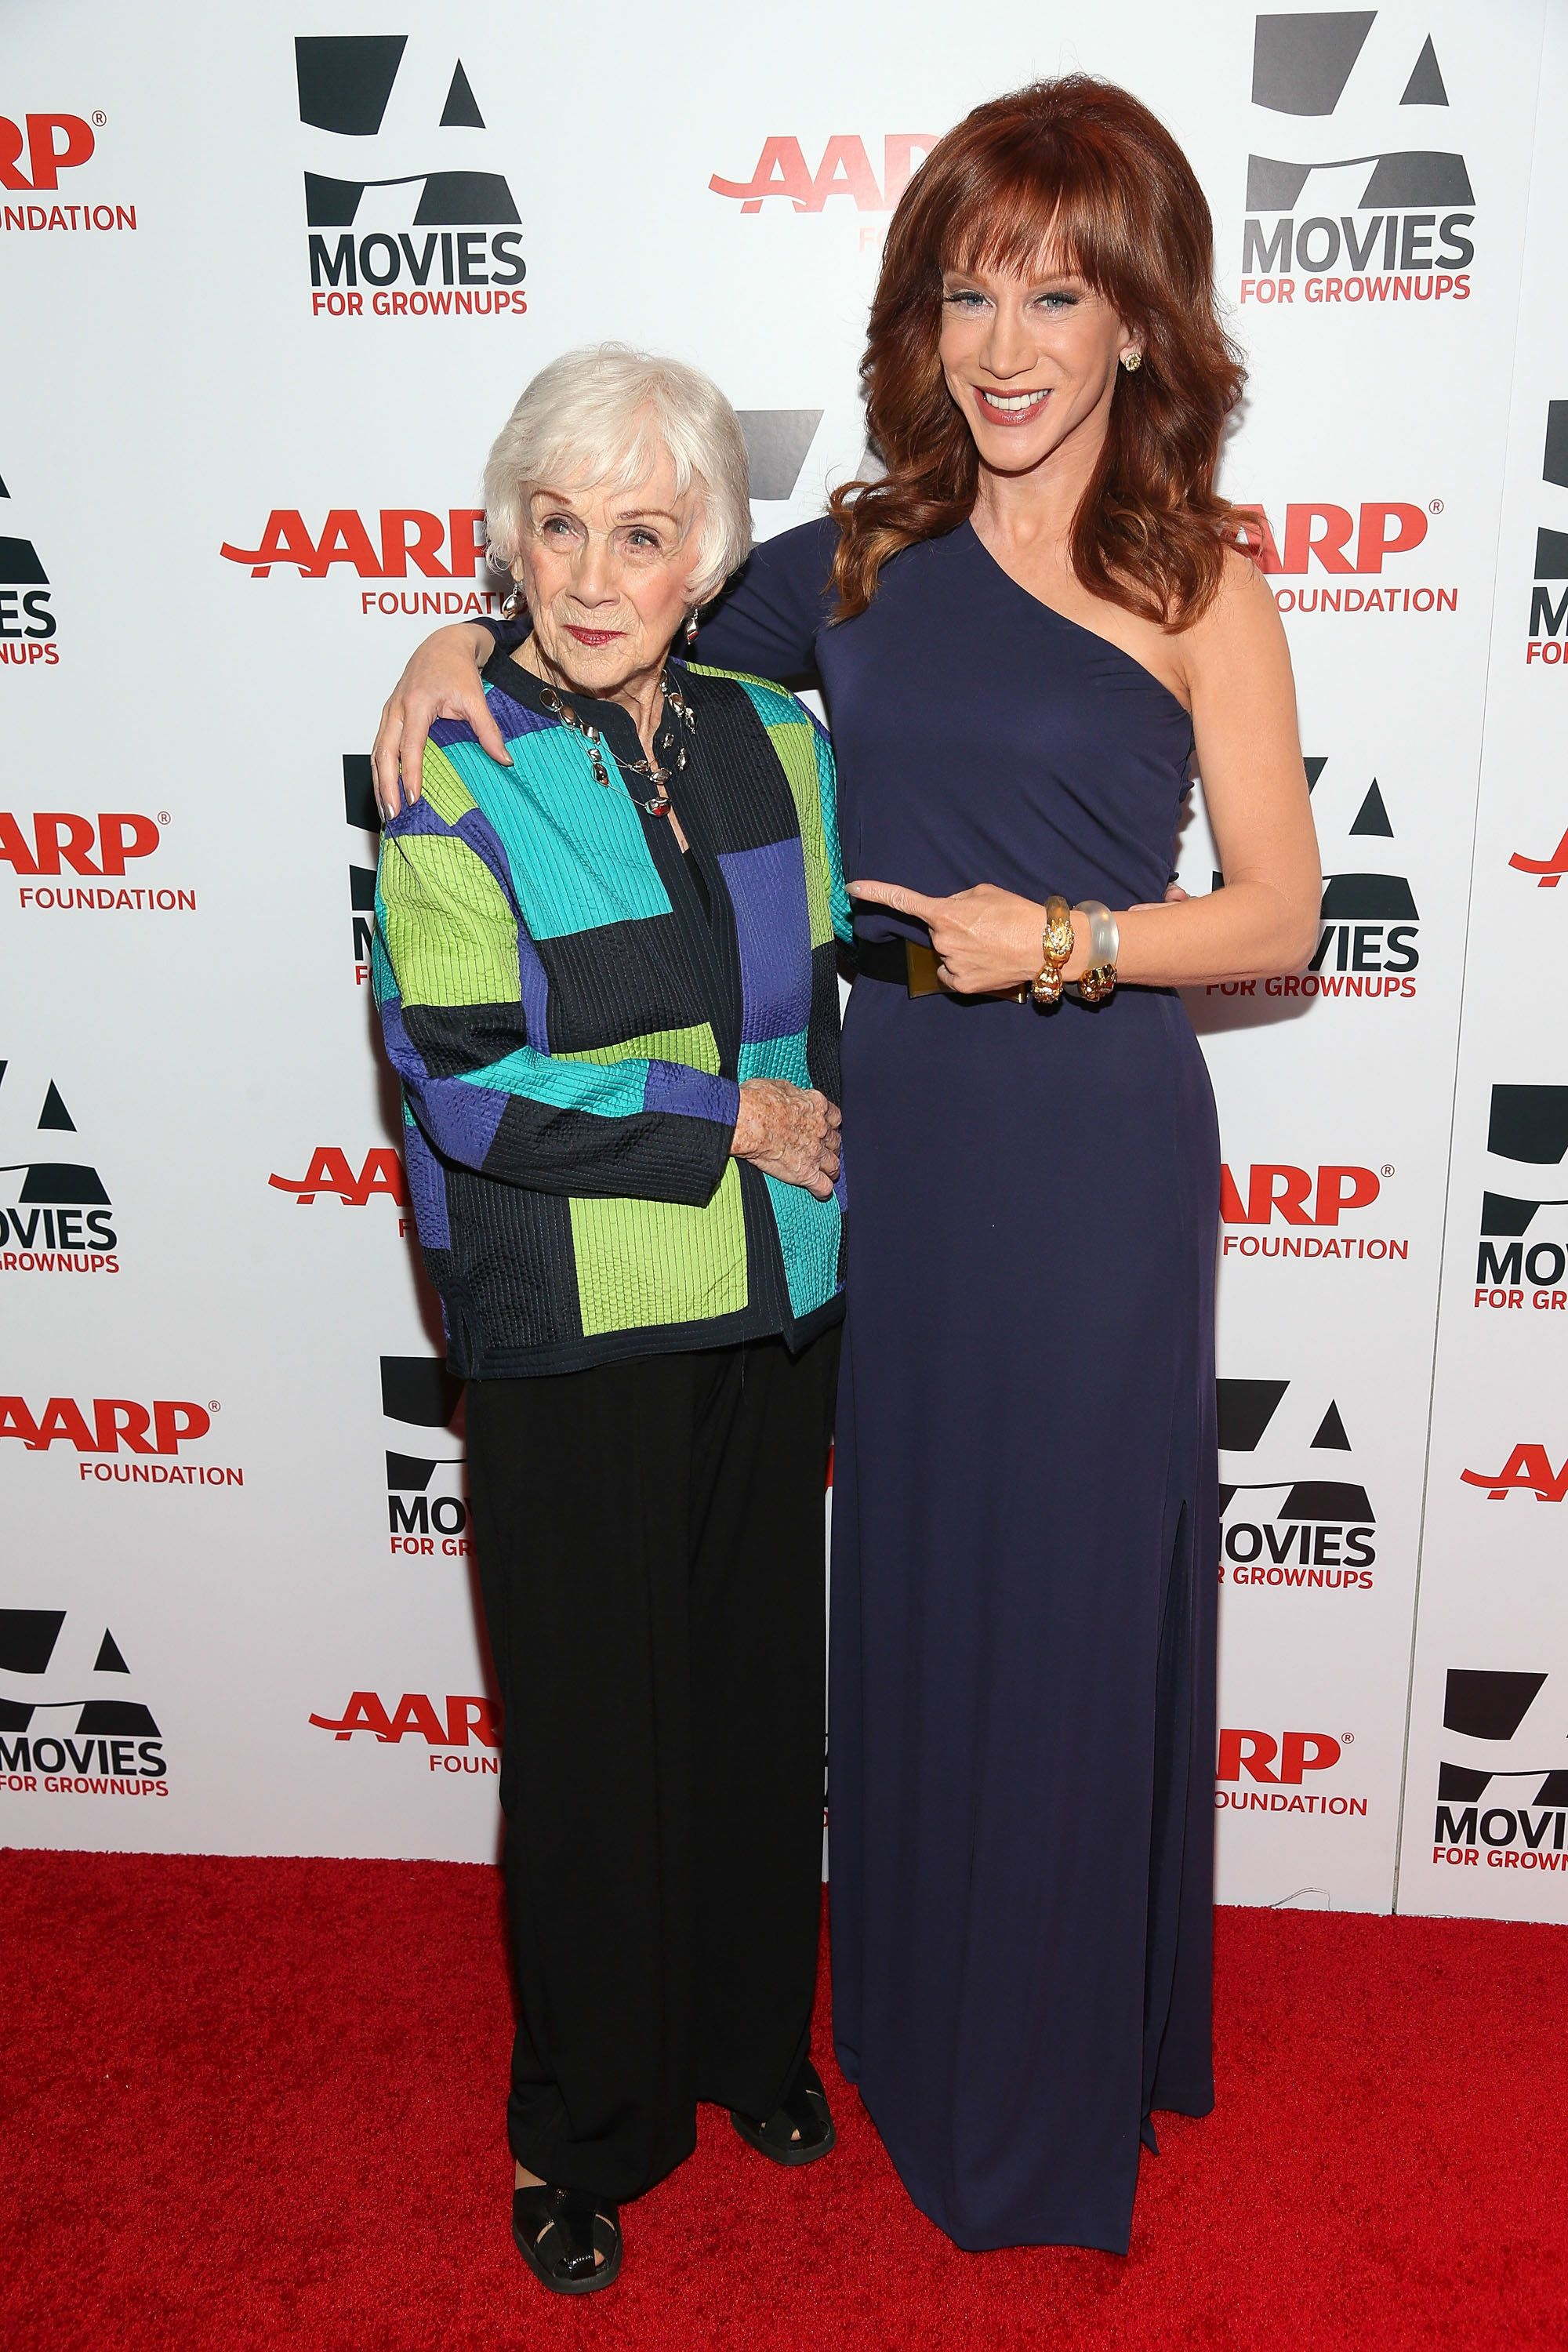 BEVERLY HILLS, CA - FEBRUARY 10:  Actress Kathy Griffin (R) and her mother, Maggie Griffin, attends the 13th Annual AARP's Movies For Grownups Awards Gala at Regent Beverly Wilshire Hotel on February 10, 2014 in Beverly Hills, California.  (Photo by Imeh Akpanudosen/Getty Images)